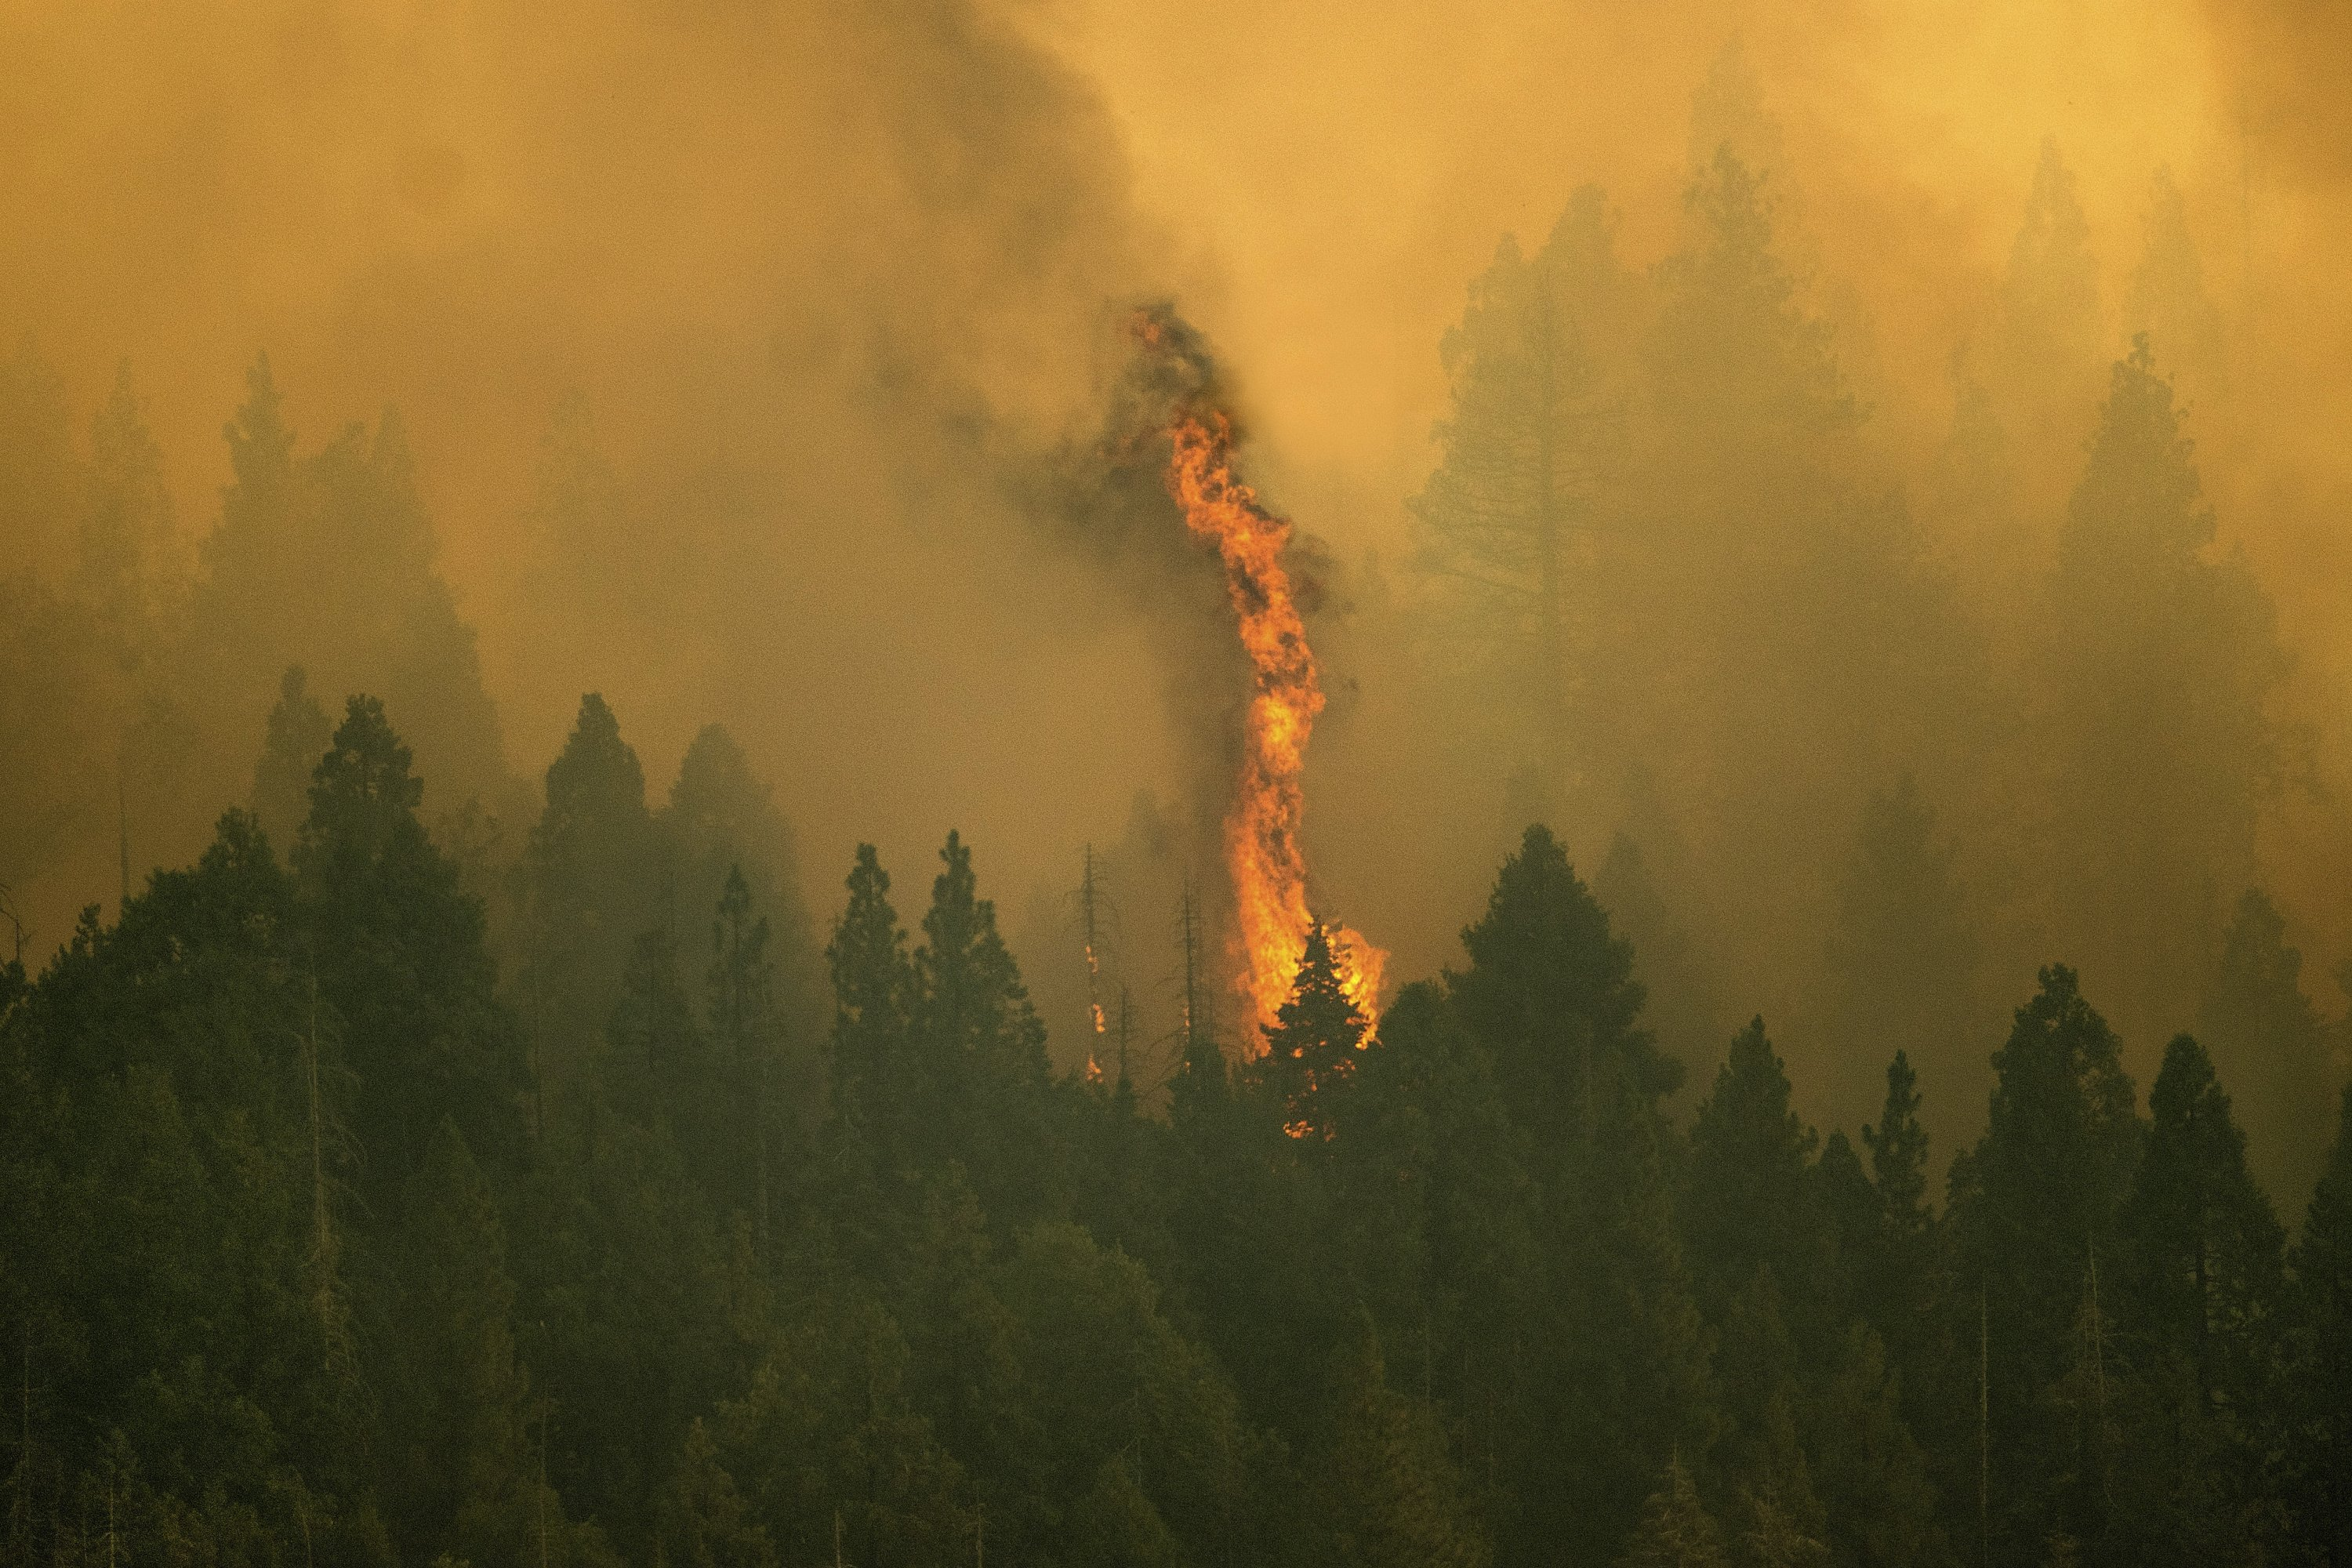 The Windy Fire burns in Sequoia National Forest, California, U.S., Sept. 16, 2021. (AP Photo)